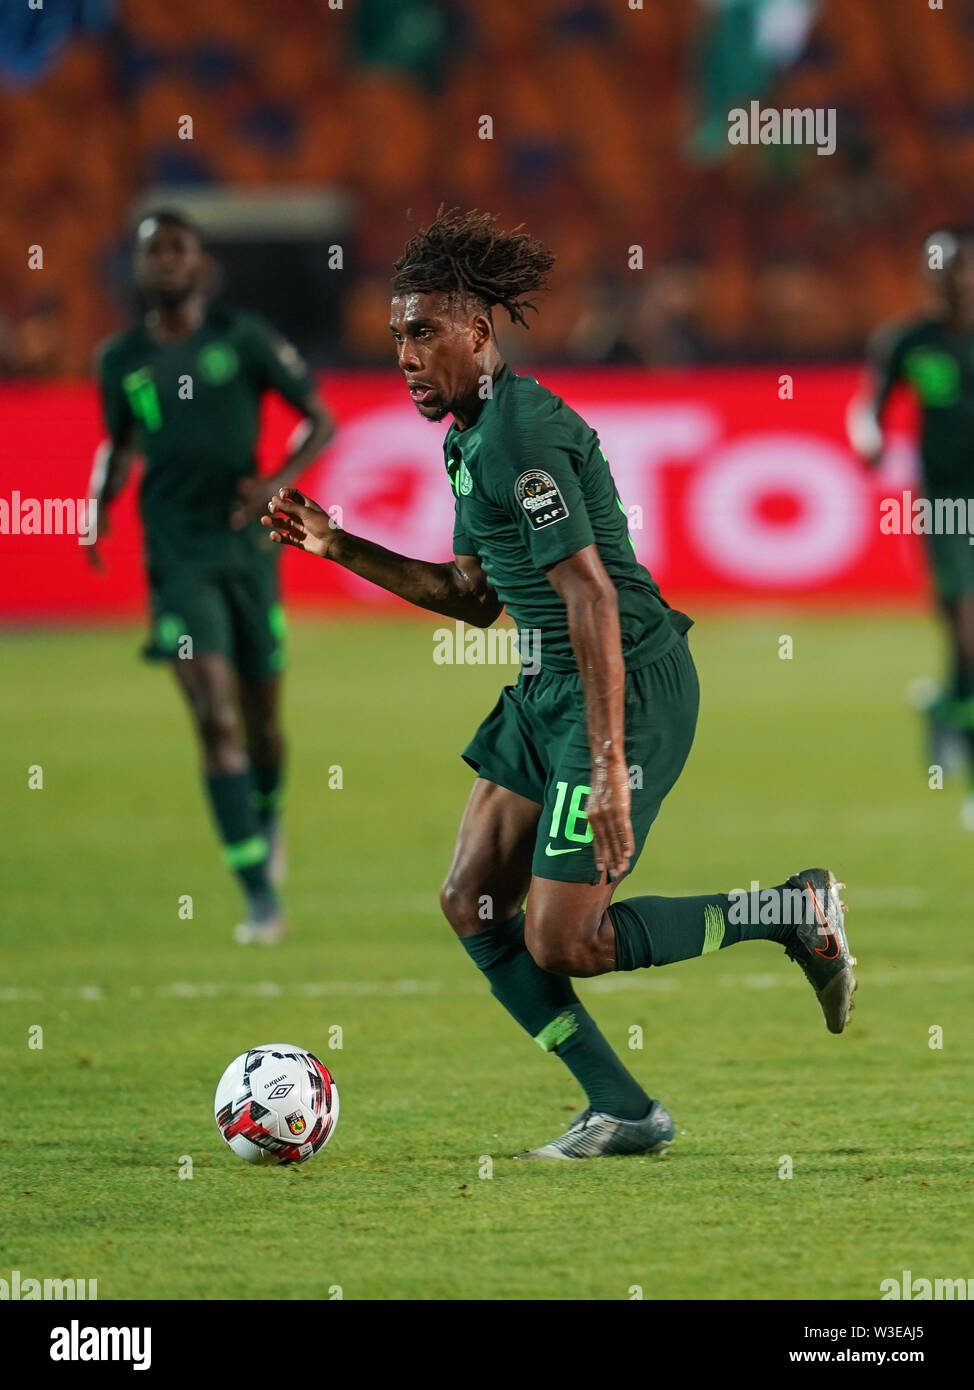 Cairo, Algeria, Egypt. 14th July, 2019. FRANCE OUT July 14, 2019: Alexander Chuka Iwobi of Nigeria during the 2019 African Cup of Nations match between Algeria and Nigeria at the Cairo International Stadium in Cairo, Egypt. Ulrik Pedersen/CSM/Alamy Live News - Stock Image